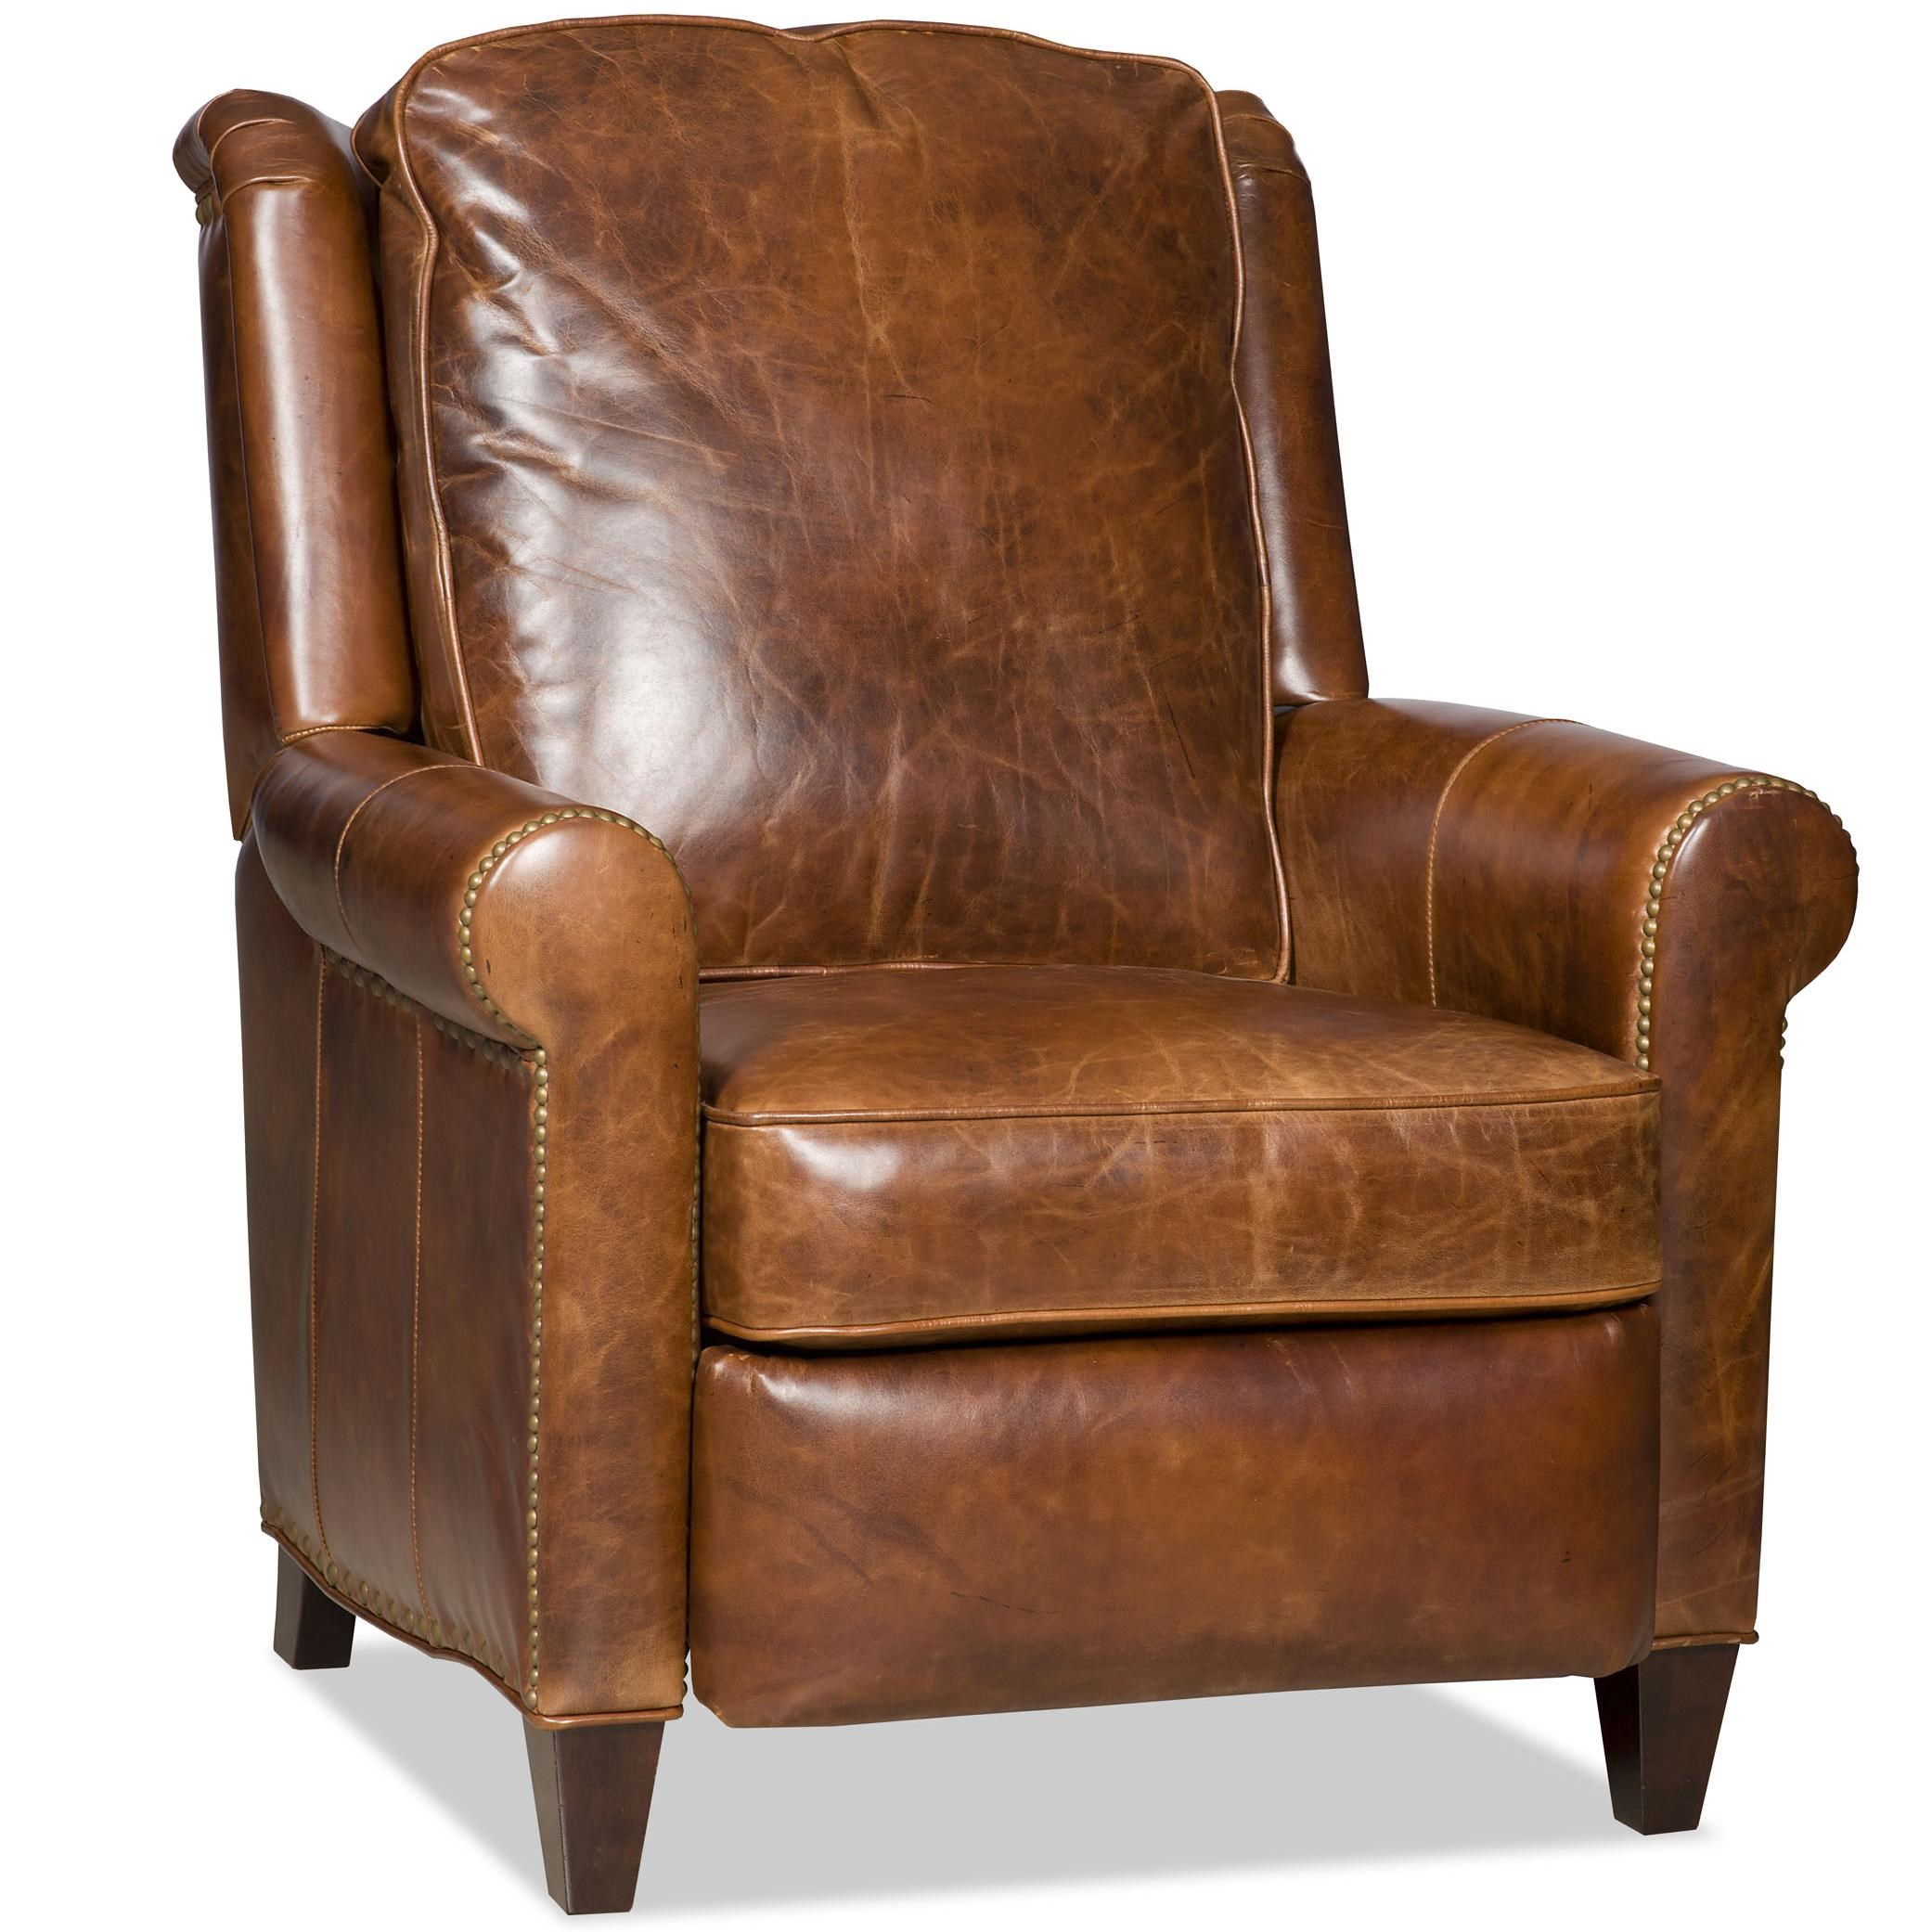 Bradington Young Chairs That Recline Aubree Recliner 3 Way Lounger With  Rolled Sock Arms